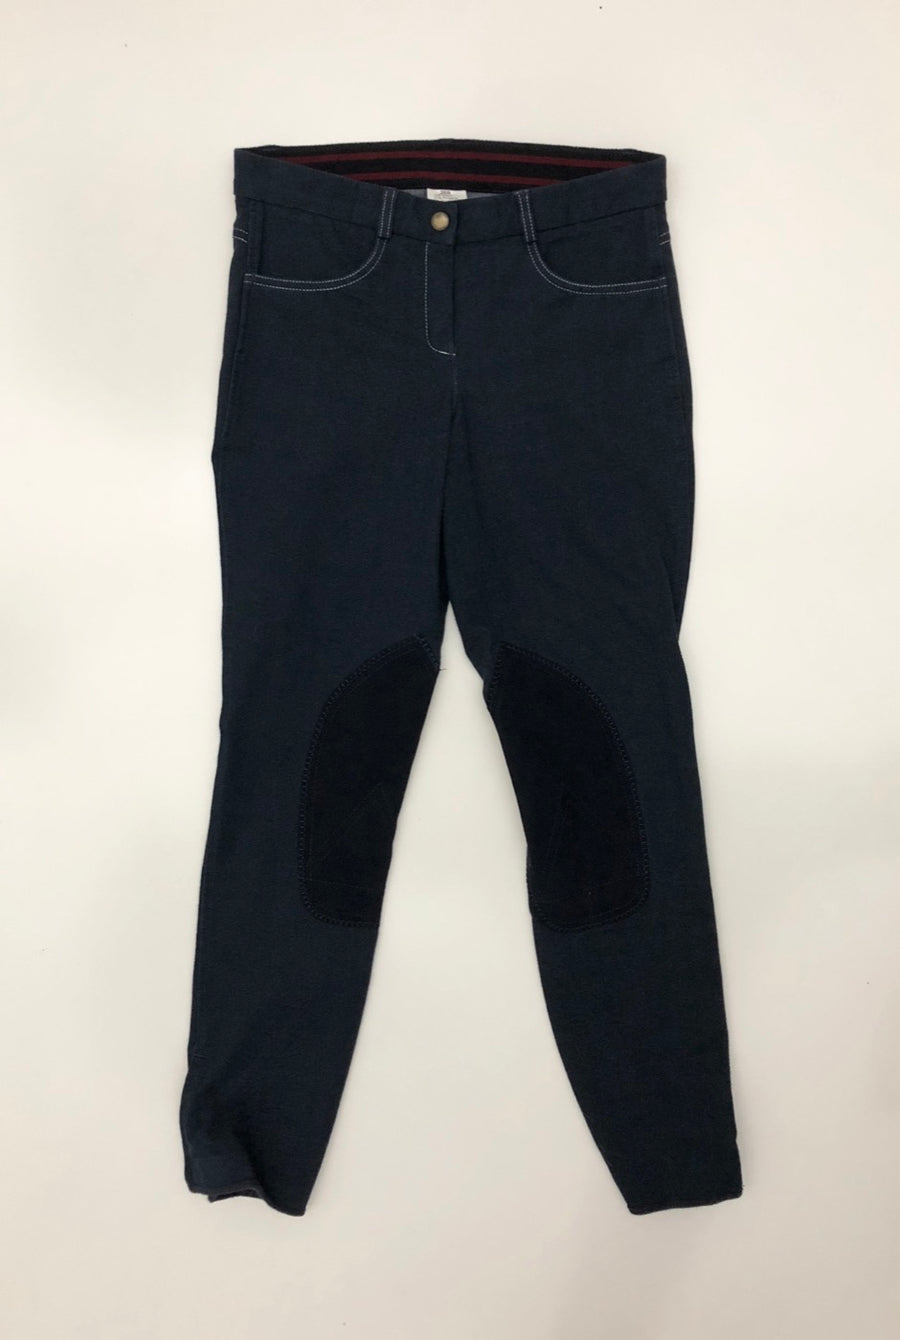 Riding Sport Knit Jean Breeches in Navy - Front View